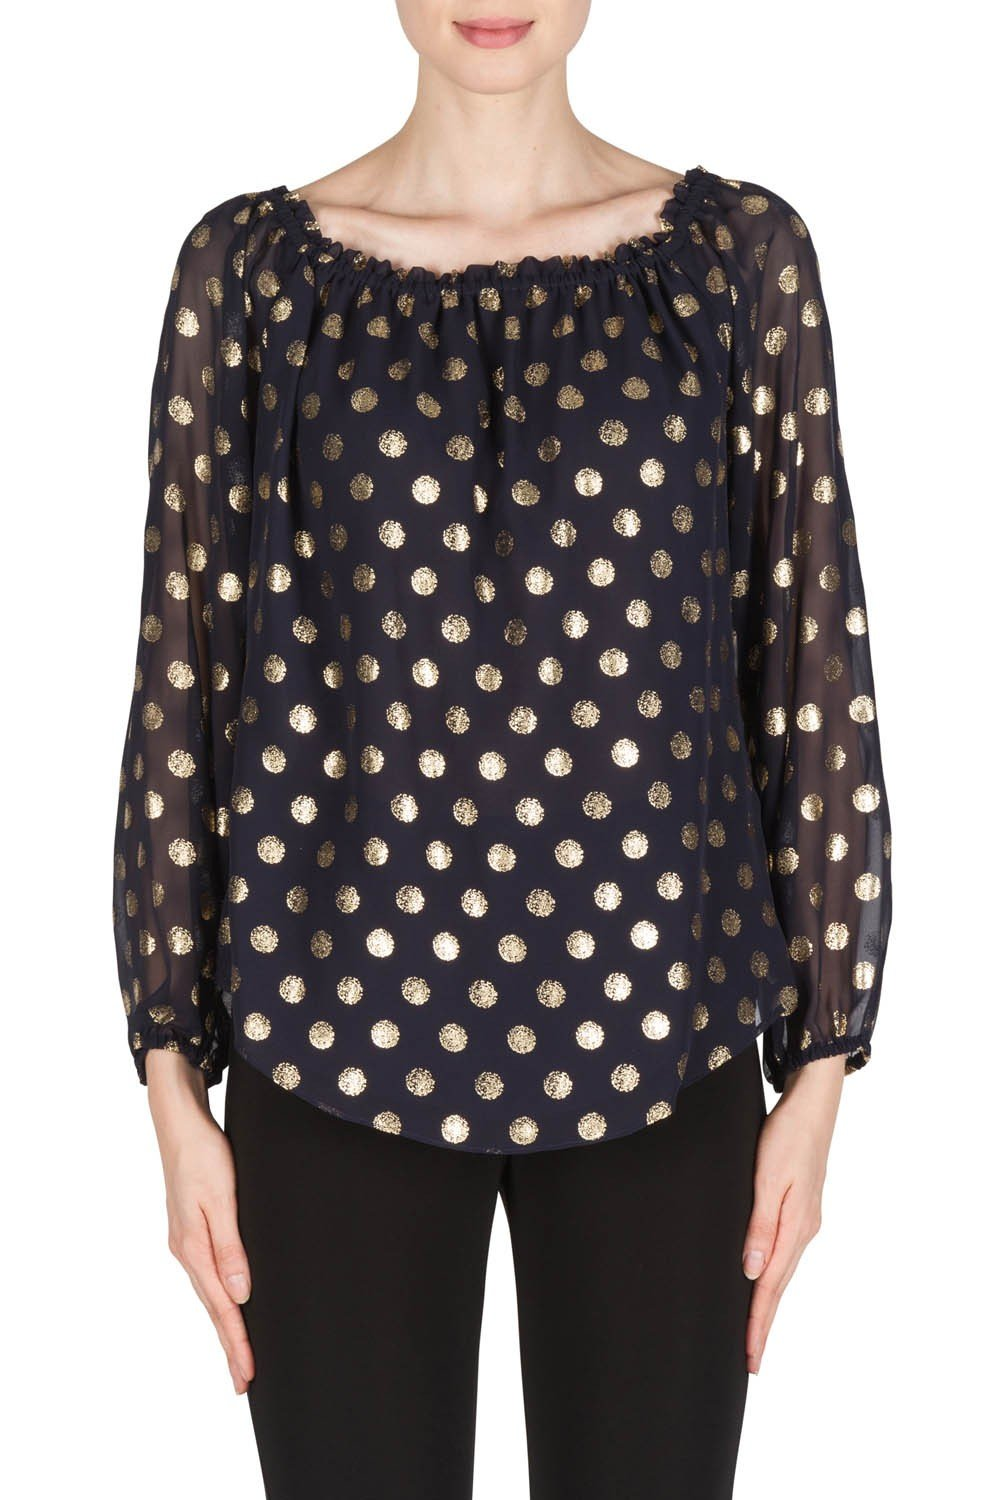 Joseph Ribkoff Midnight Blue/Gold Top With Polka Dot Details Style 181608